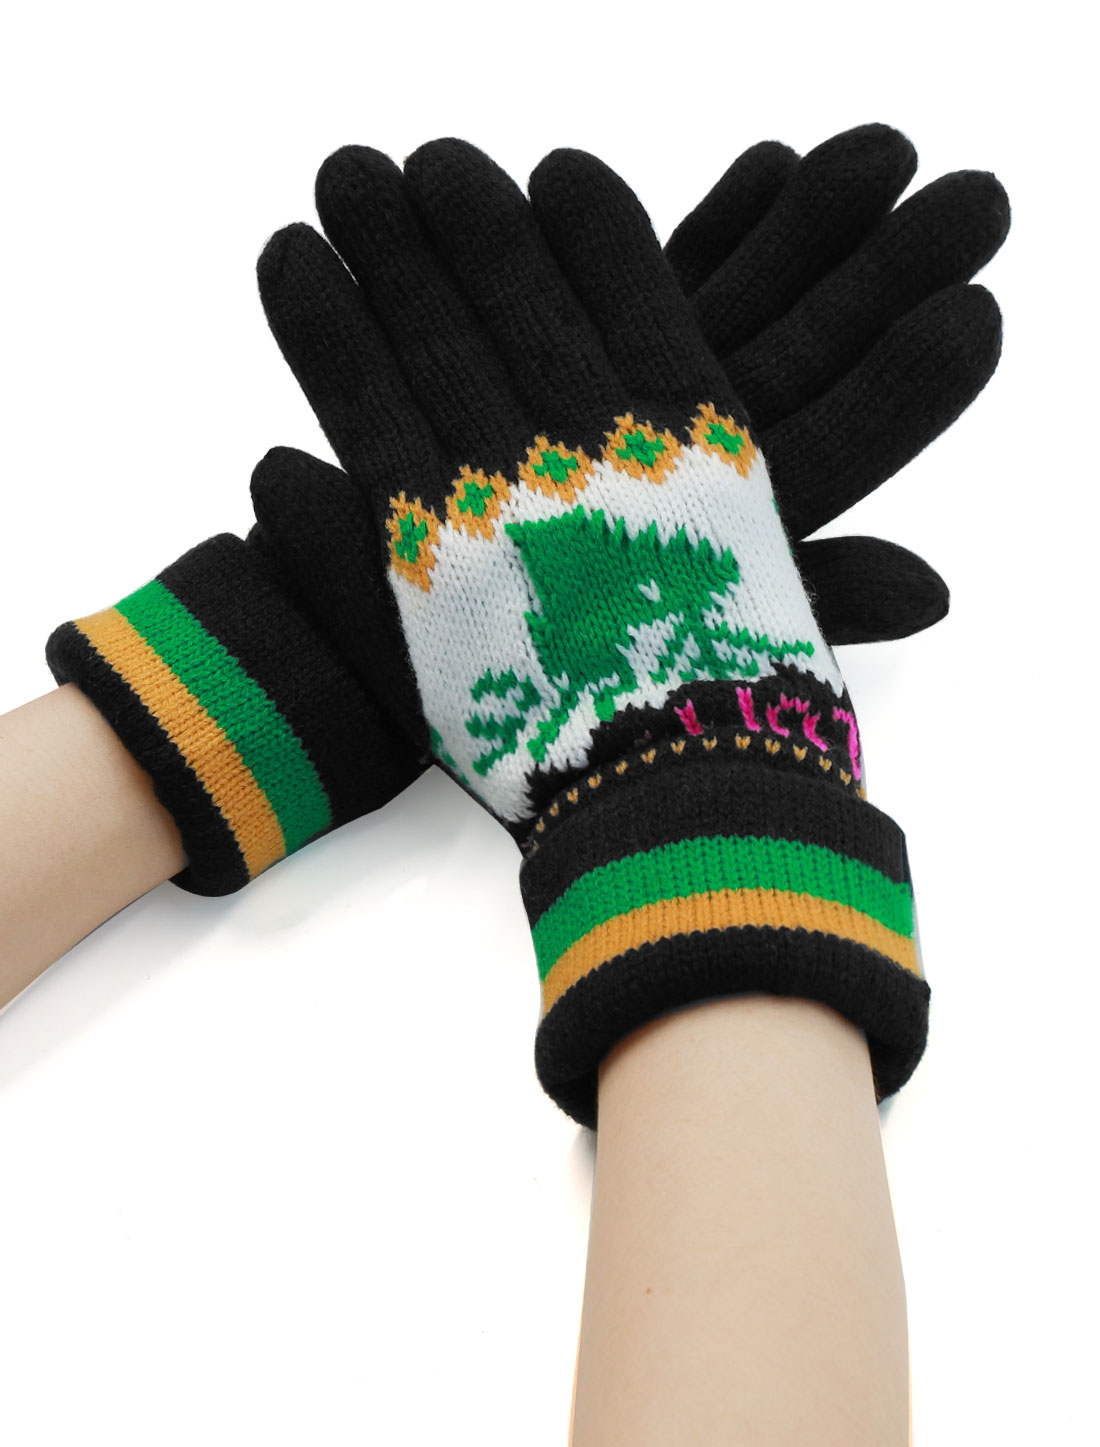 Ladies Casual Deer Pattern Roll Up Cuffs Five Fingers Knitting Gloves Pair Black